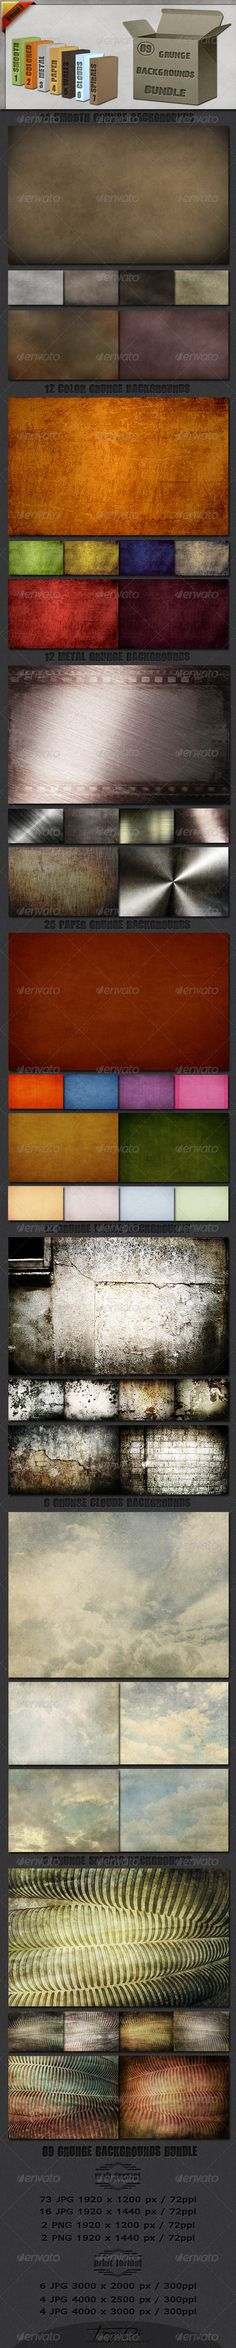 Creative Graphic Resources : 89 Grunge Backgrounds Bundle | GraphicRiver